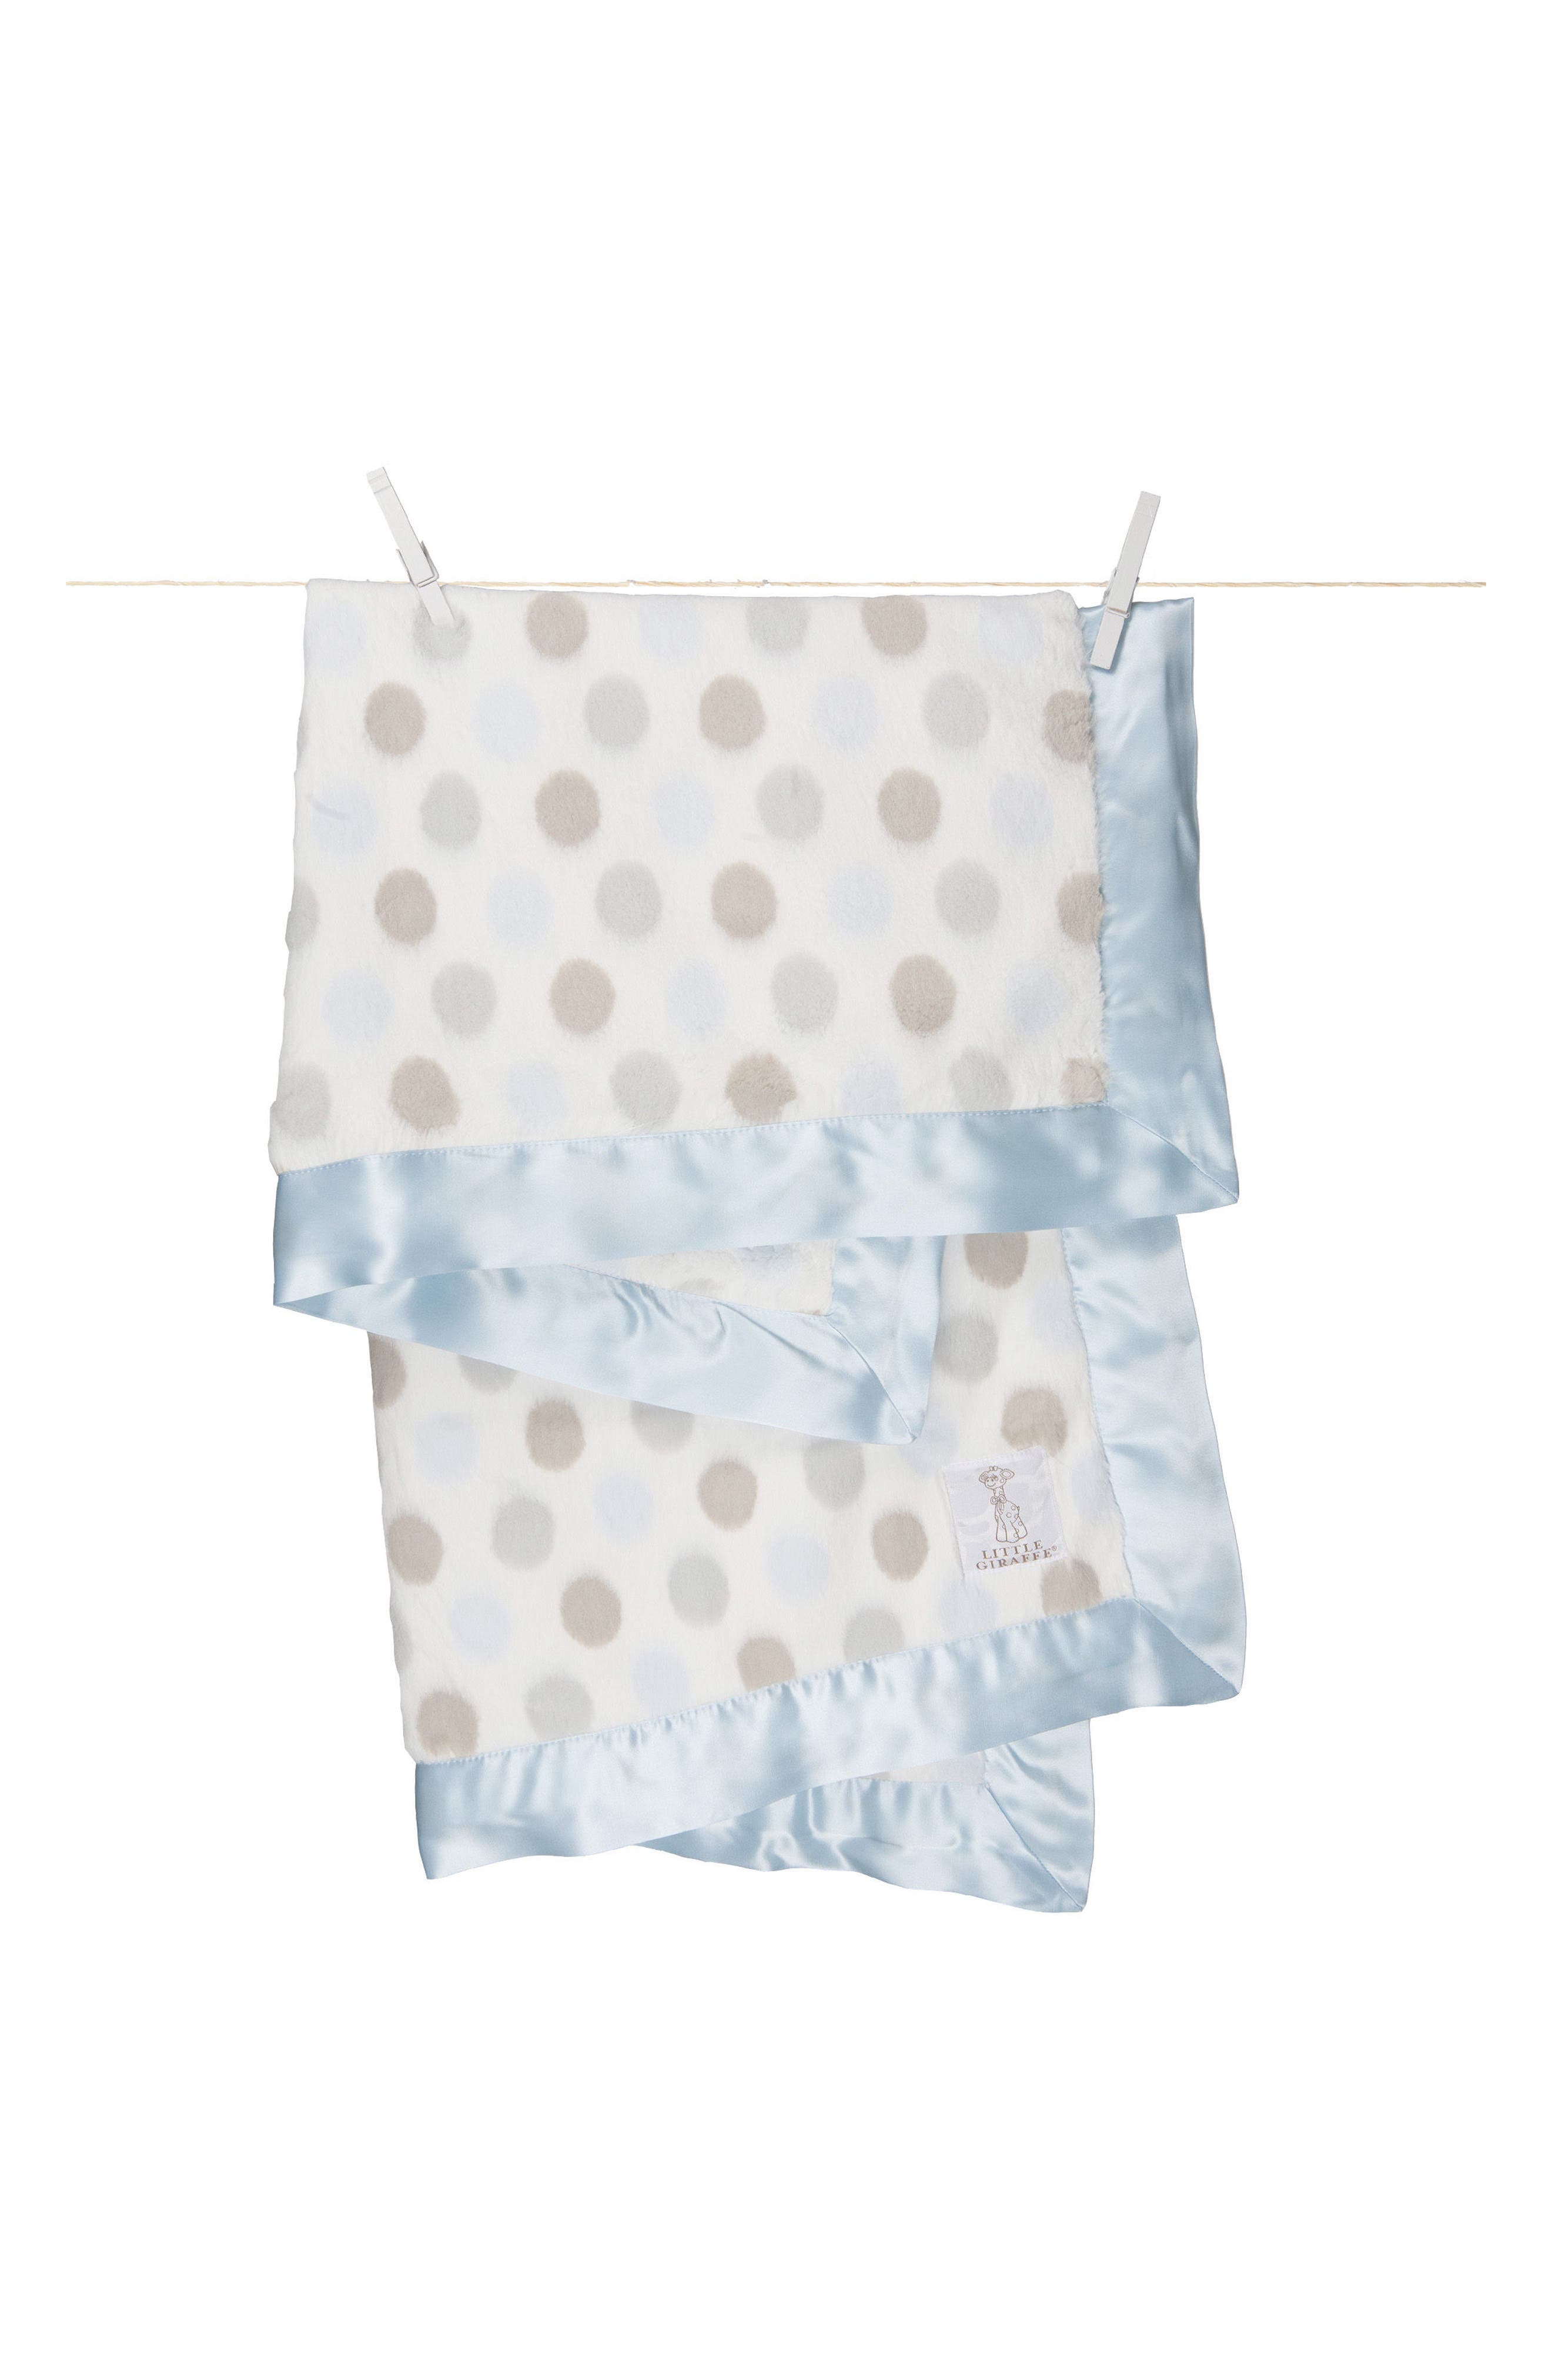 Little Giraffe 'Luxe Dot' Blanket